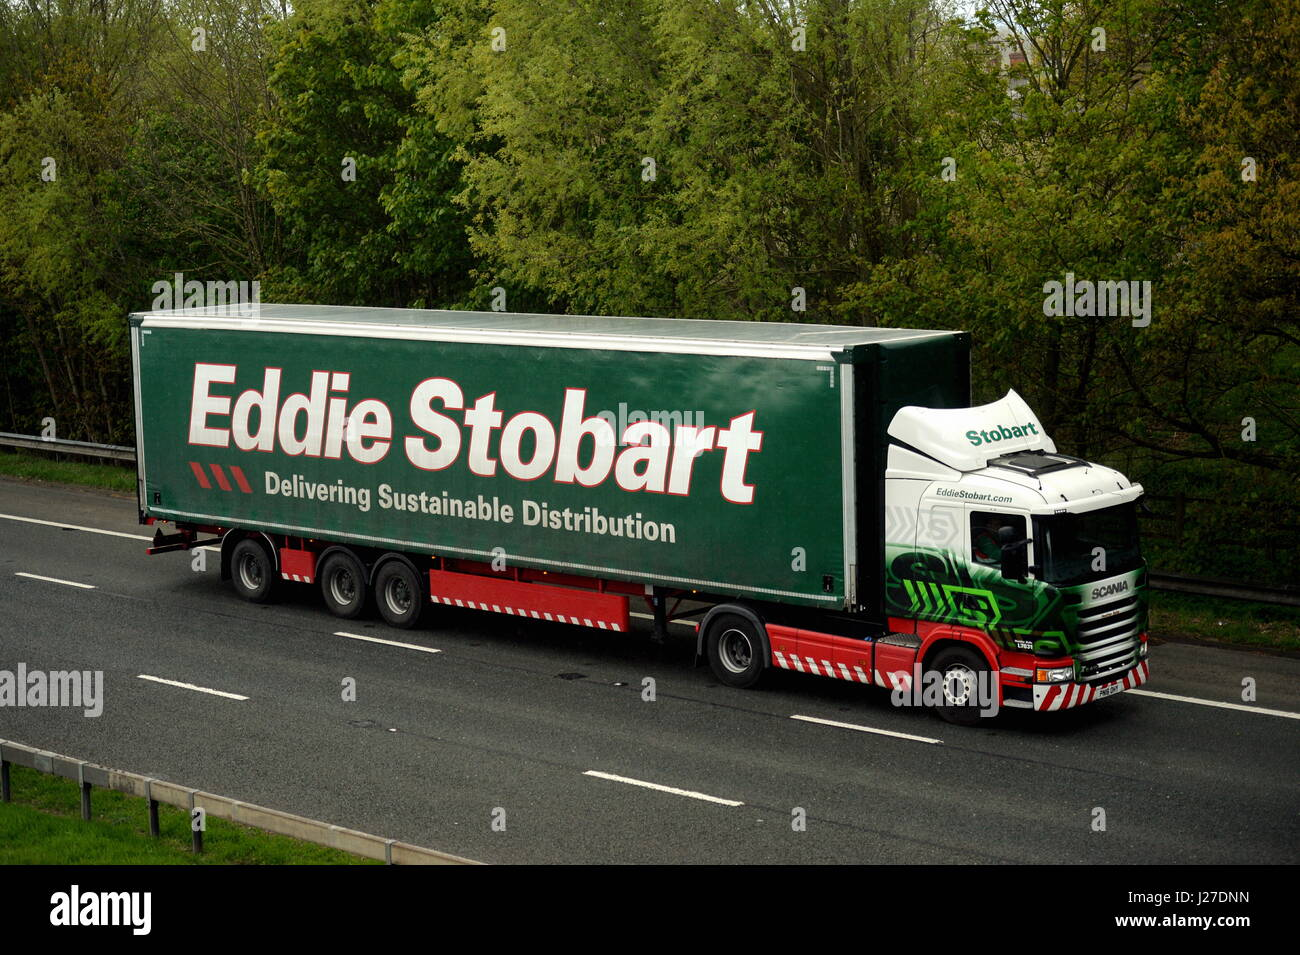 London, UK. 25th Apr, 2017. Eddie Stobart Scania articualted truck. Eddie Stobart Logistics have today floated on - Stock Image